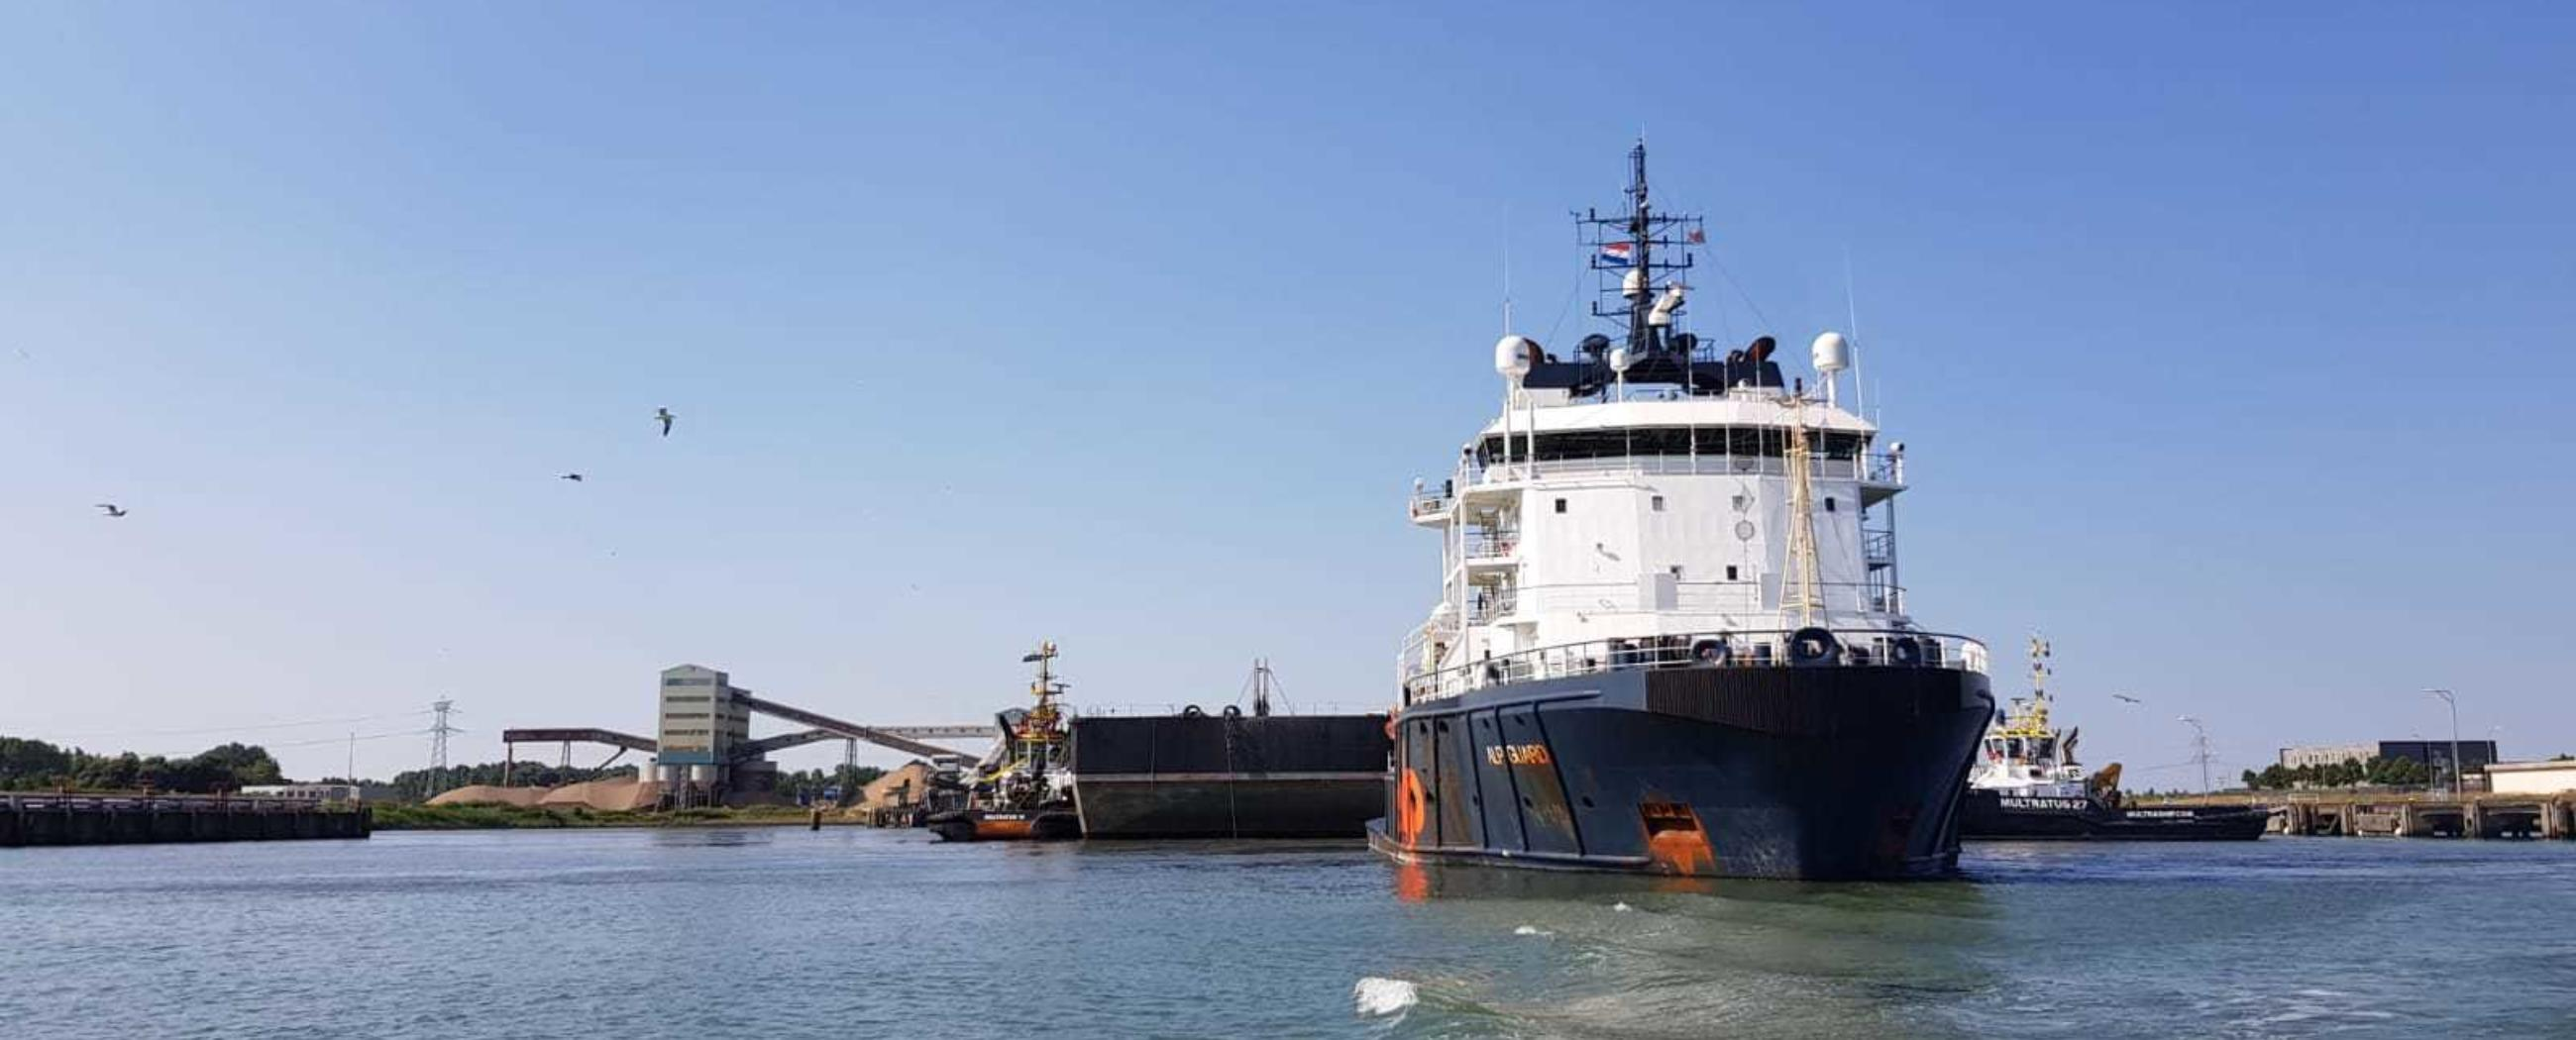 ALP-Guard-towing-Iron-Lady-barge-Allseas-Flushing-Korea.jpg